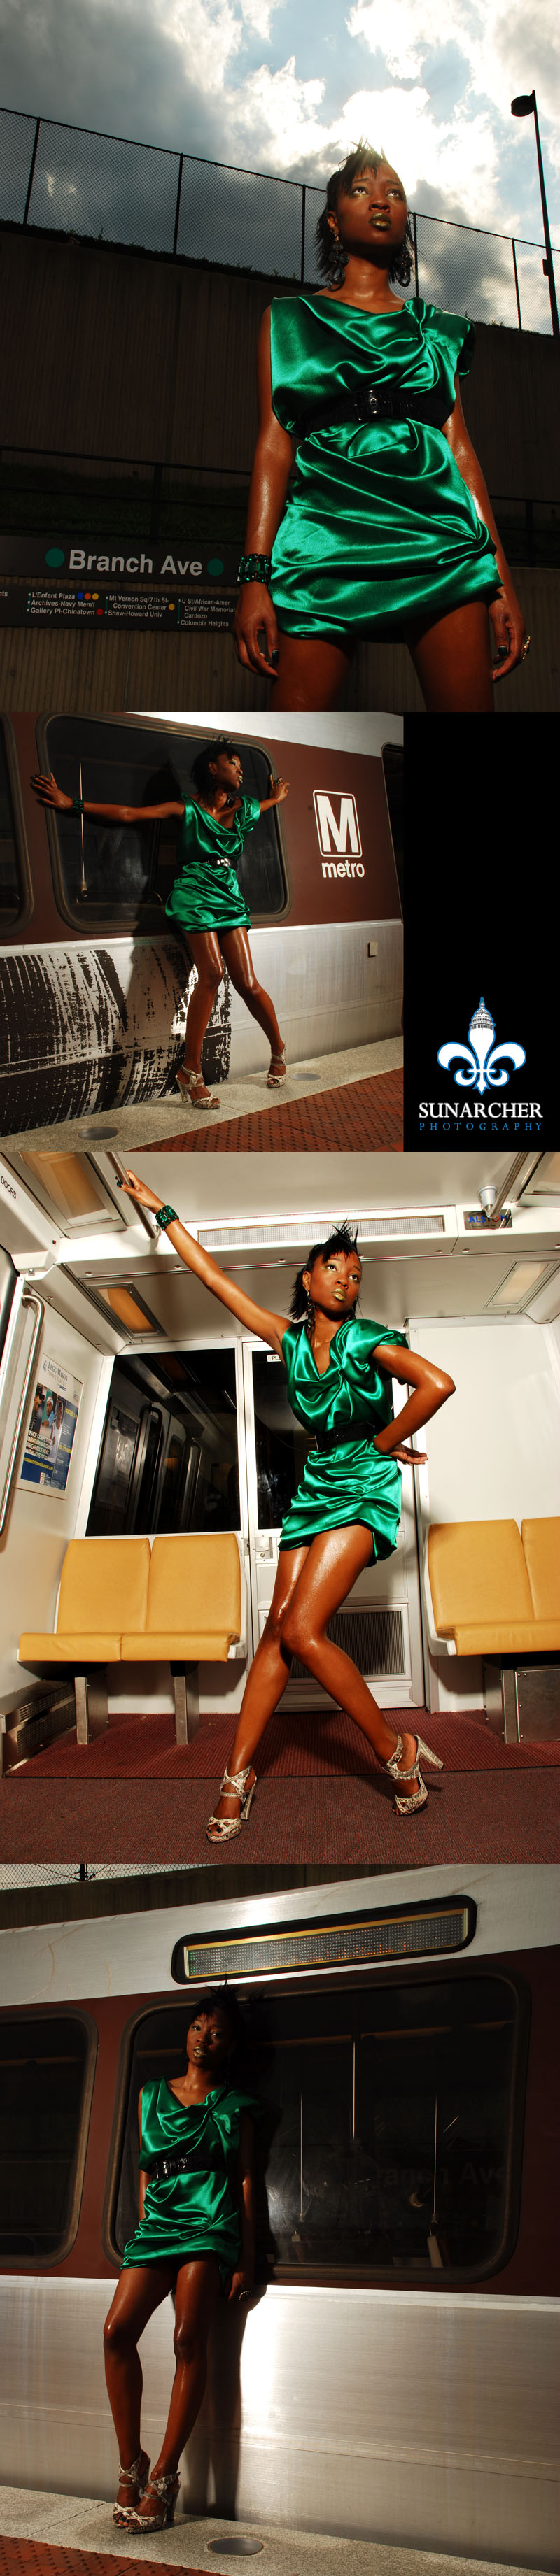 Female model photo shoot of Natavia by SunArcher Photography in Branch Ave Station, makeup by The Masquerade Belle